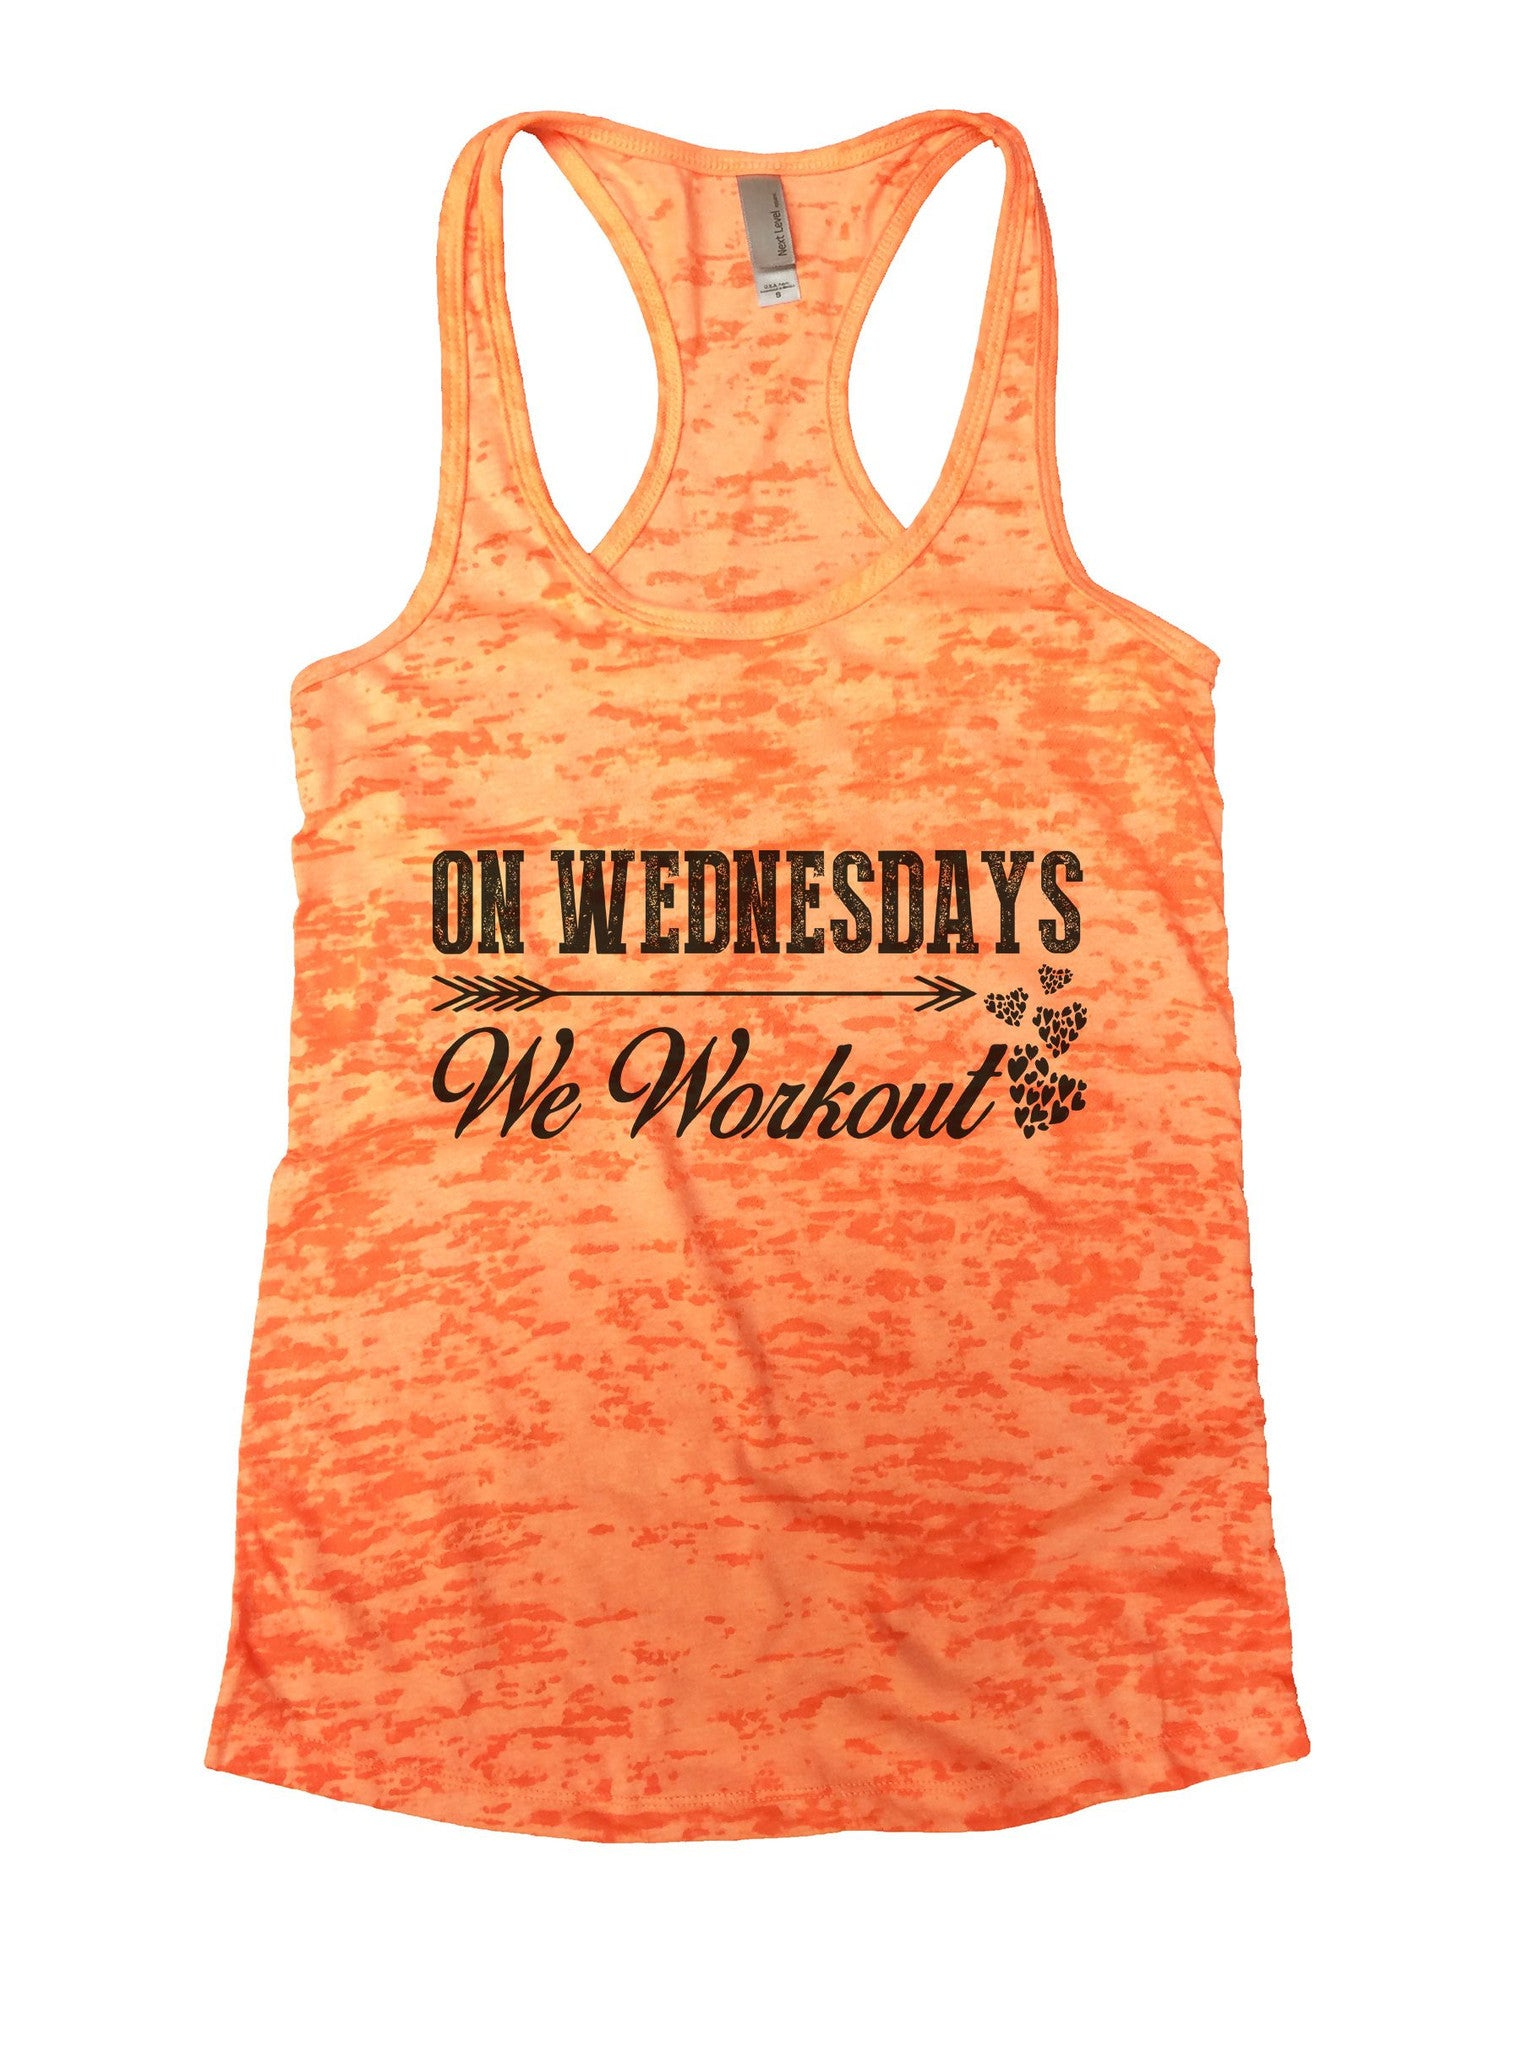 On Wednesdays We Workout Burnout Tank Top By BurnoutTankTops.com - 923 - Funny Shirts Tank Tops Burnouts and Triblends  - 3